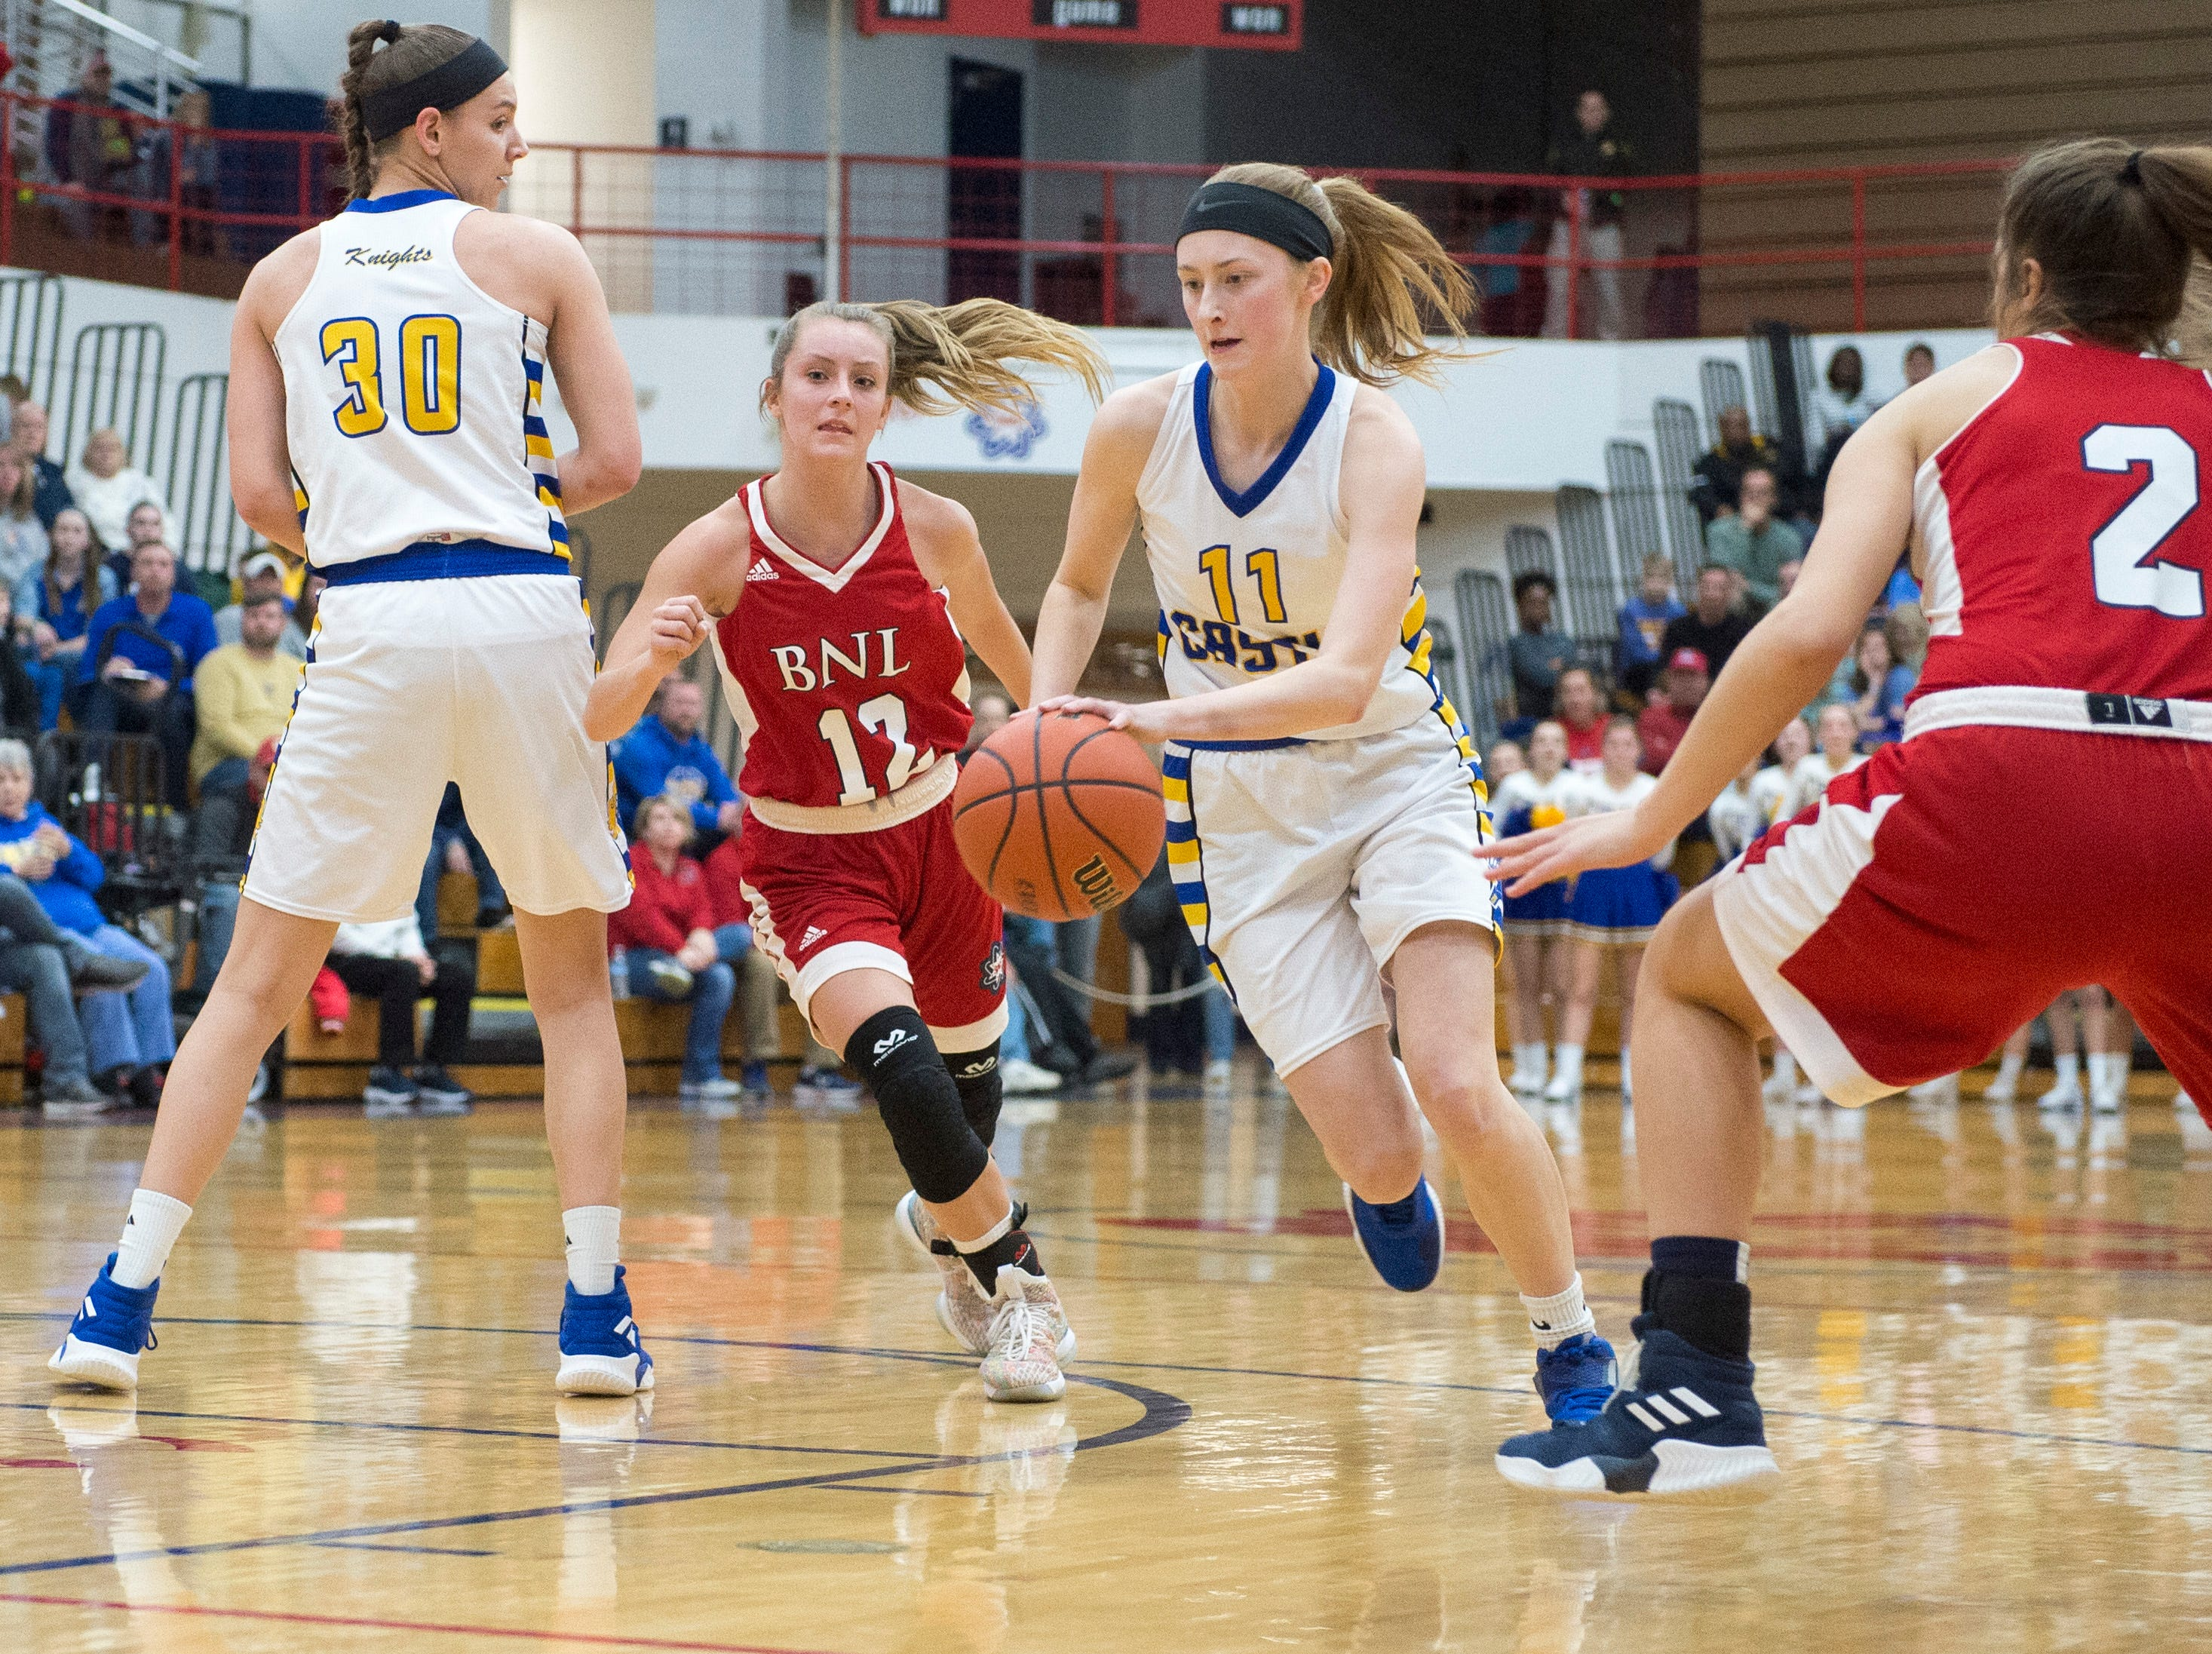 Castle's Carly Harpenau (11) gets around Bedford North Lawrence defense during the  IHSAA Girls Basketball Class 4A Regional Championship game against the Bedford North Lawrence Lady Stars at the Stars Field House in Bedford, Ind. Saturday, Feb. 9, 2019.